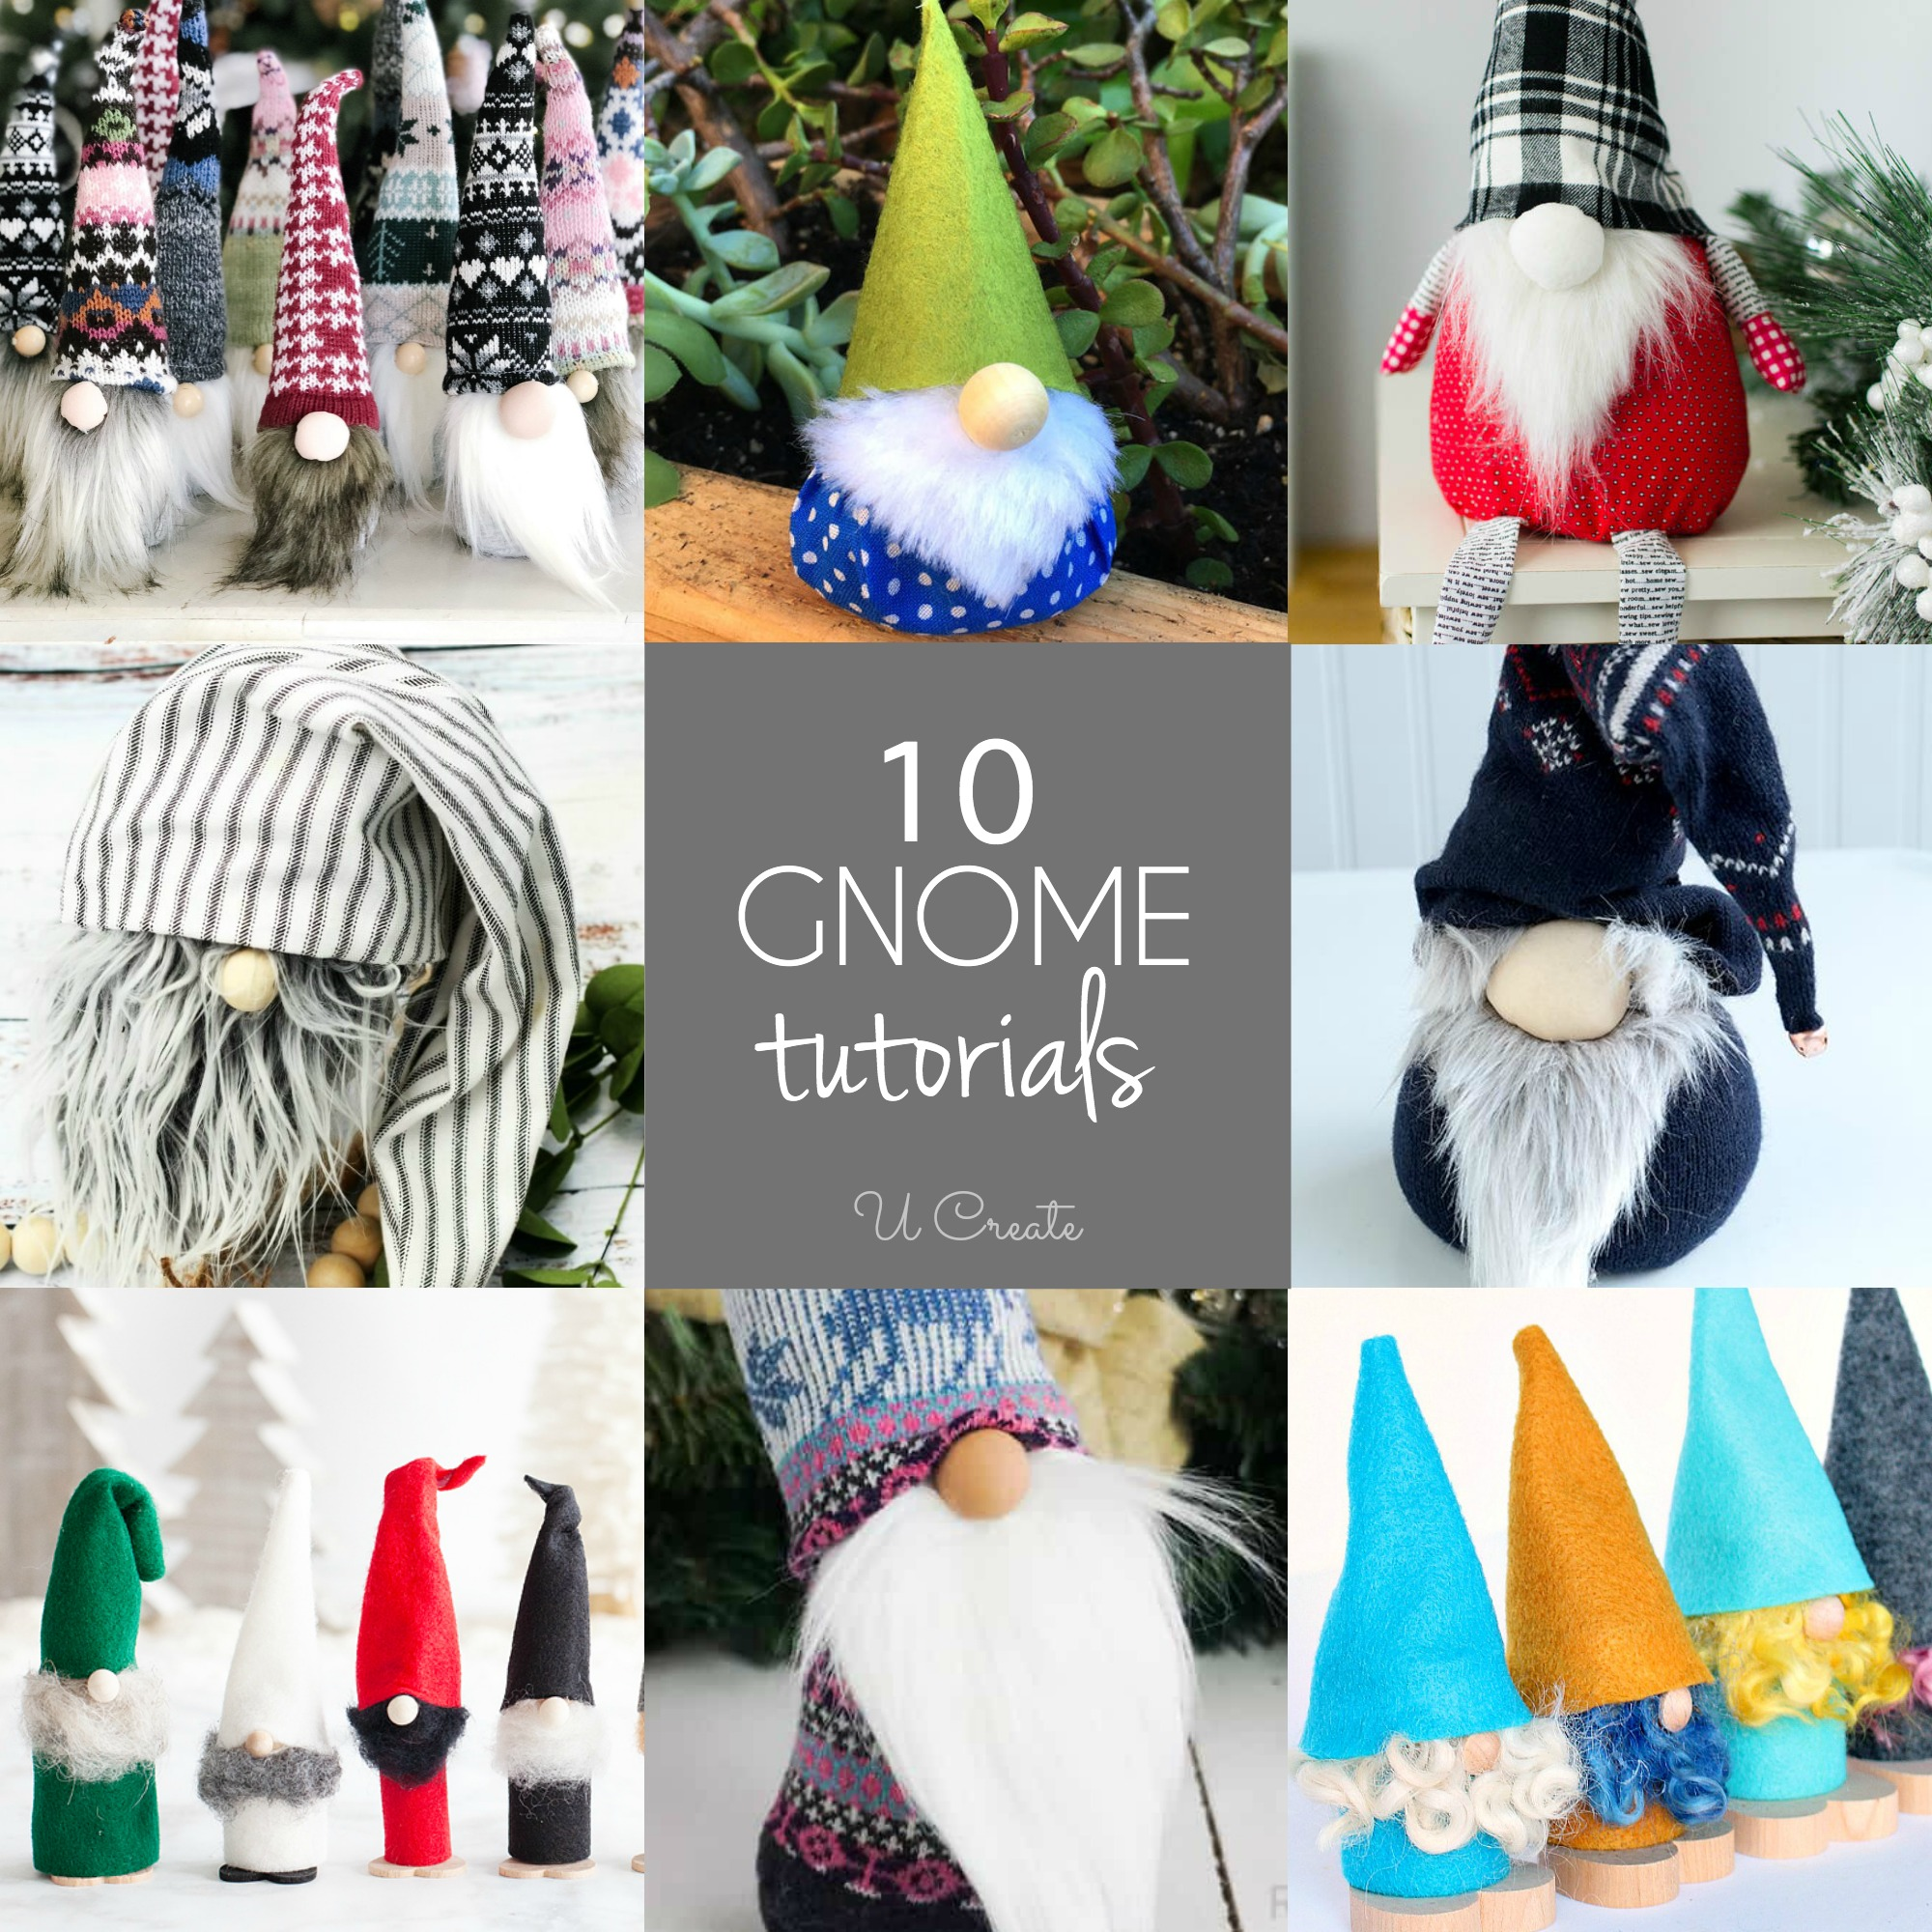 10 Gnome Tutorials